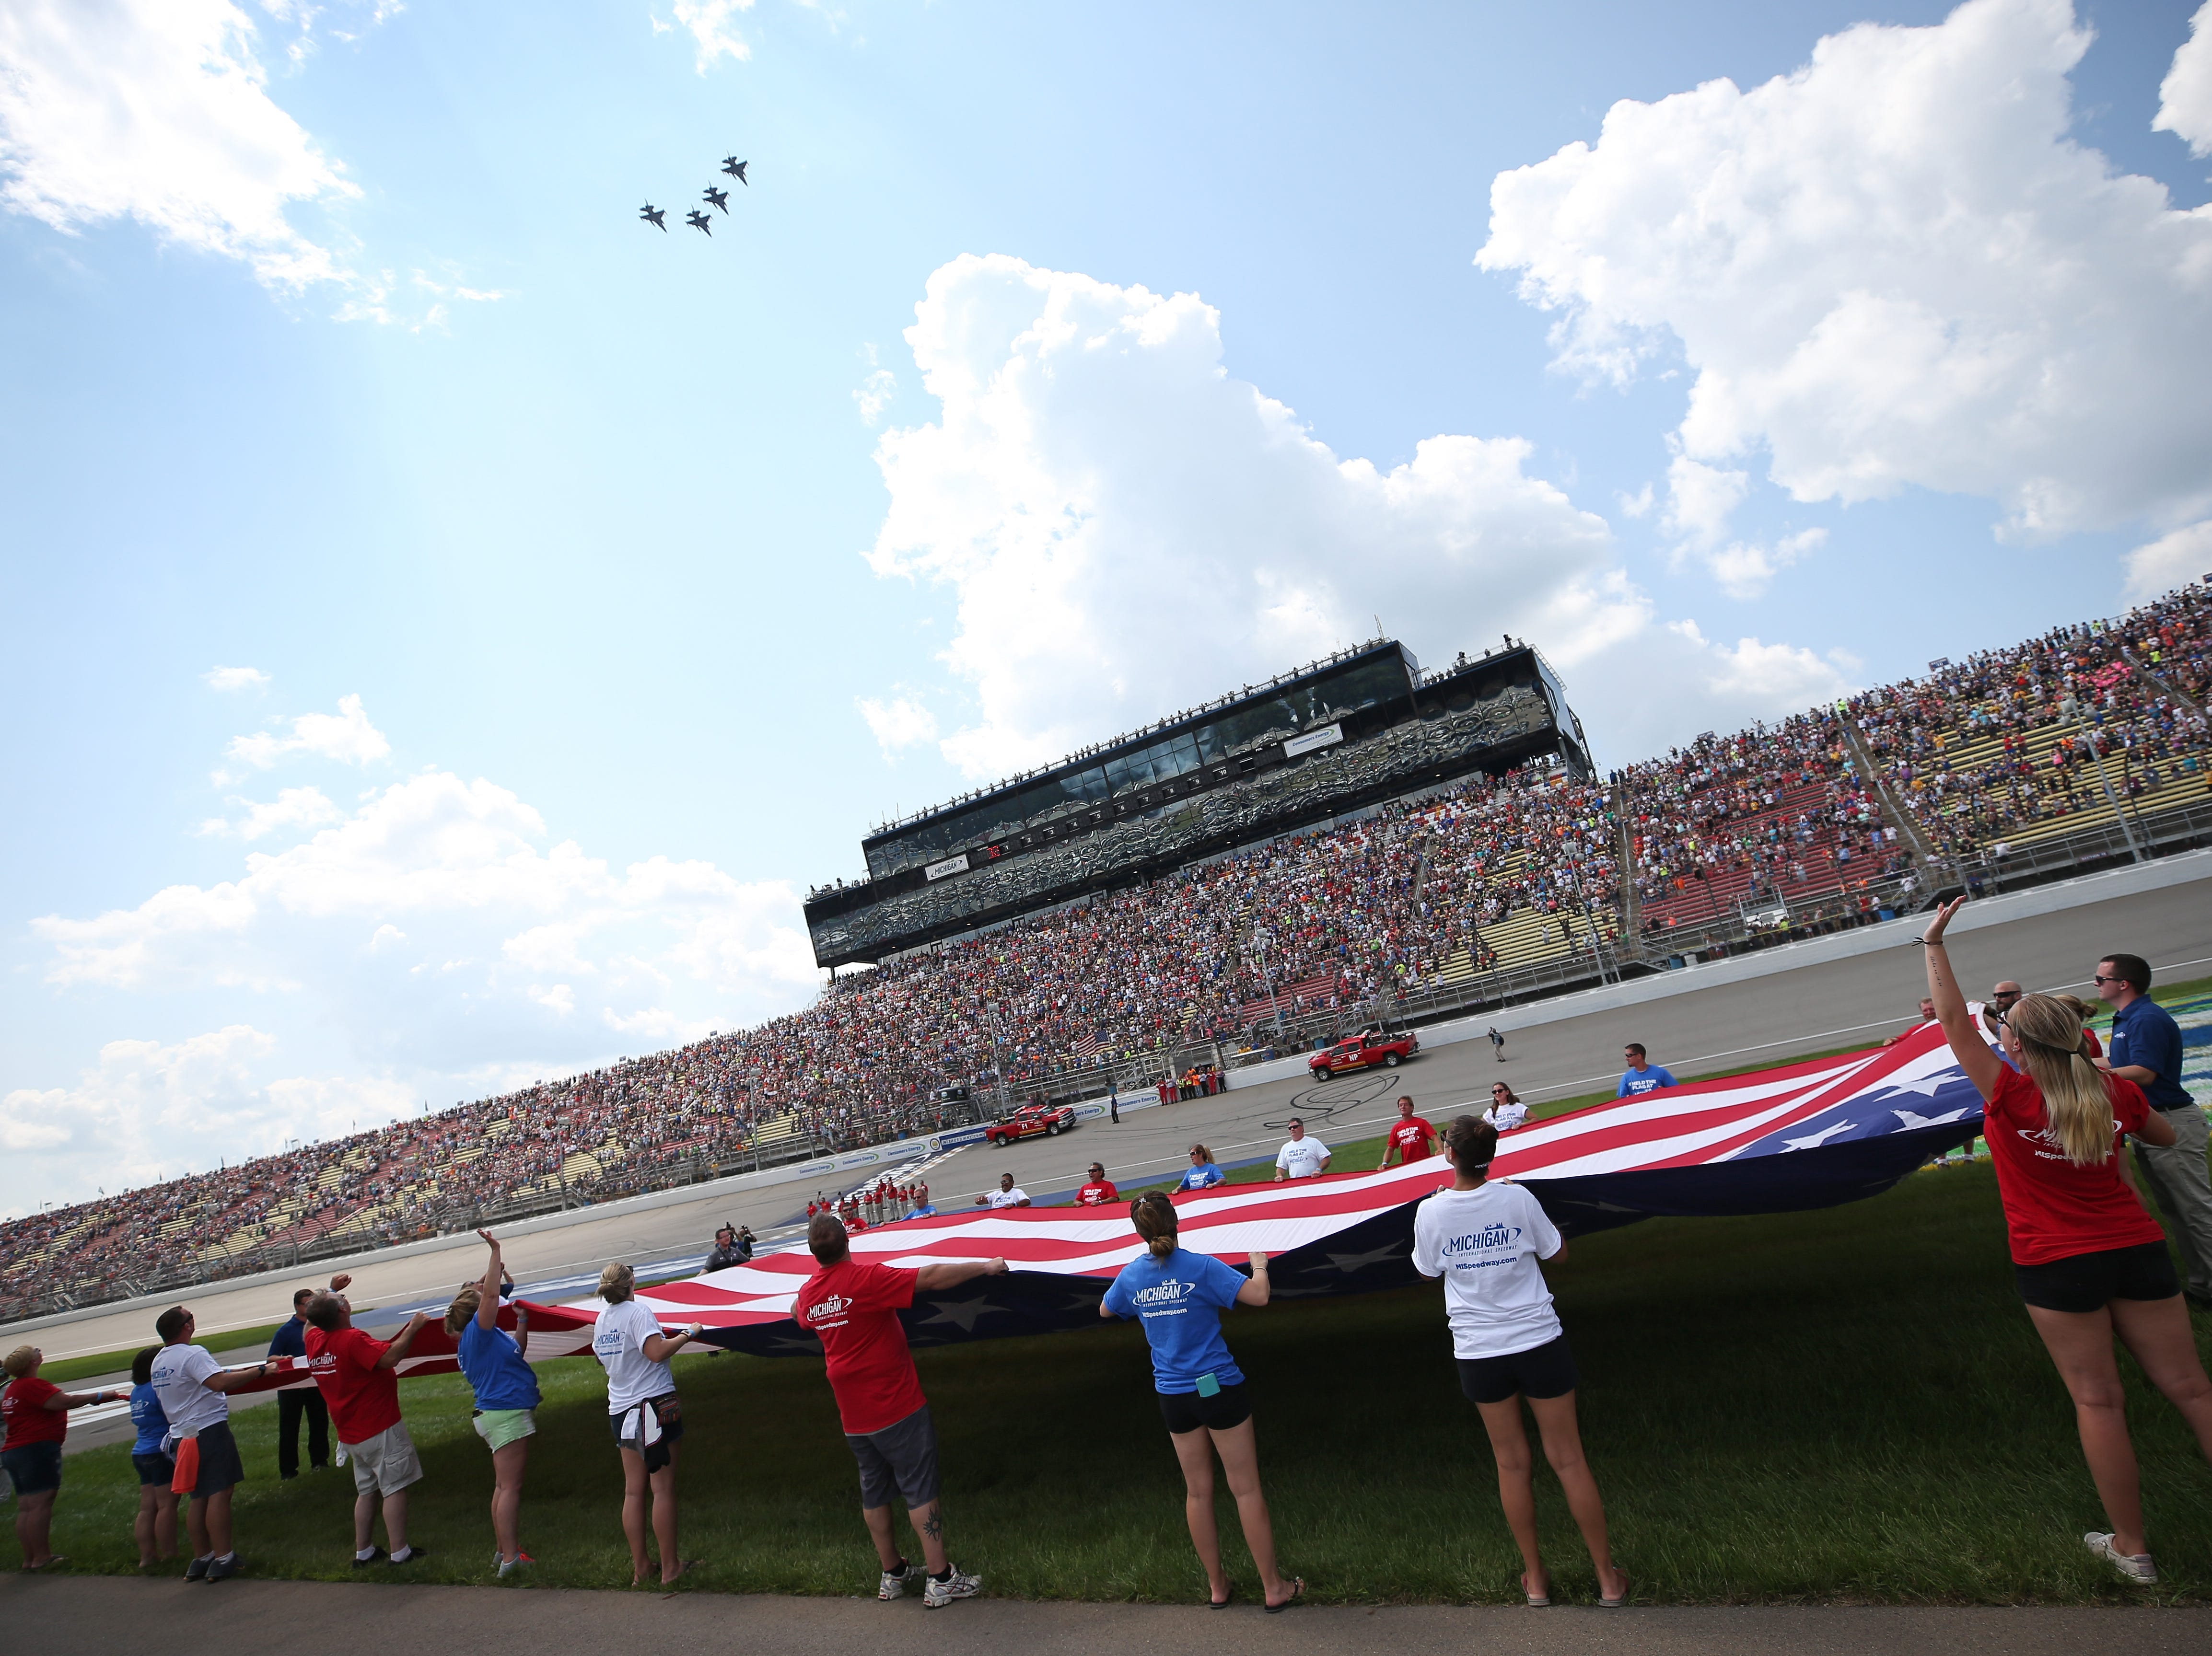 A flyover is performed during the national anthem prior to the start of the Monster Energy NASCAR Cup Series Consmers Energy 400 at Michigan International Speedway on August 12, 2018 in Brooklyn, Michigan.